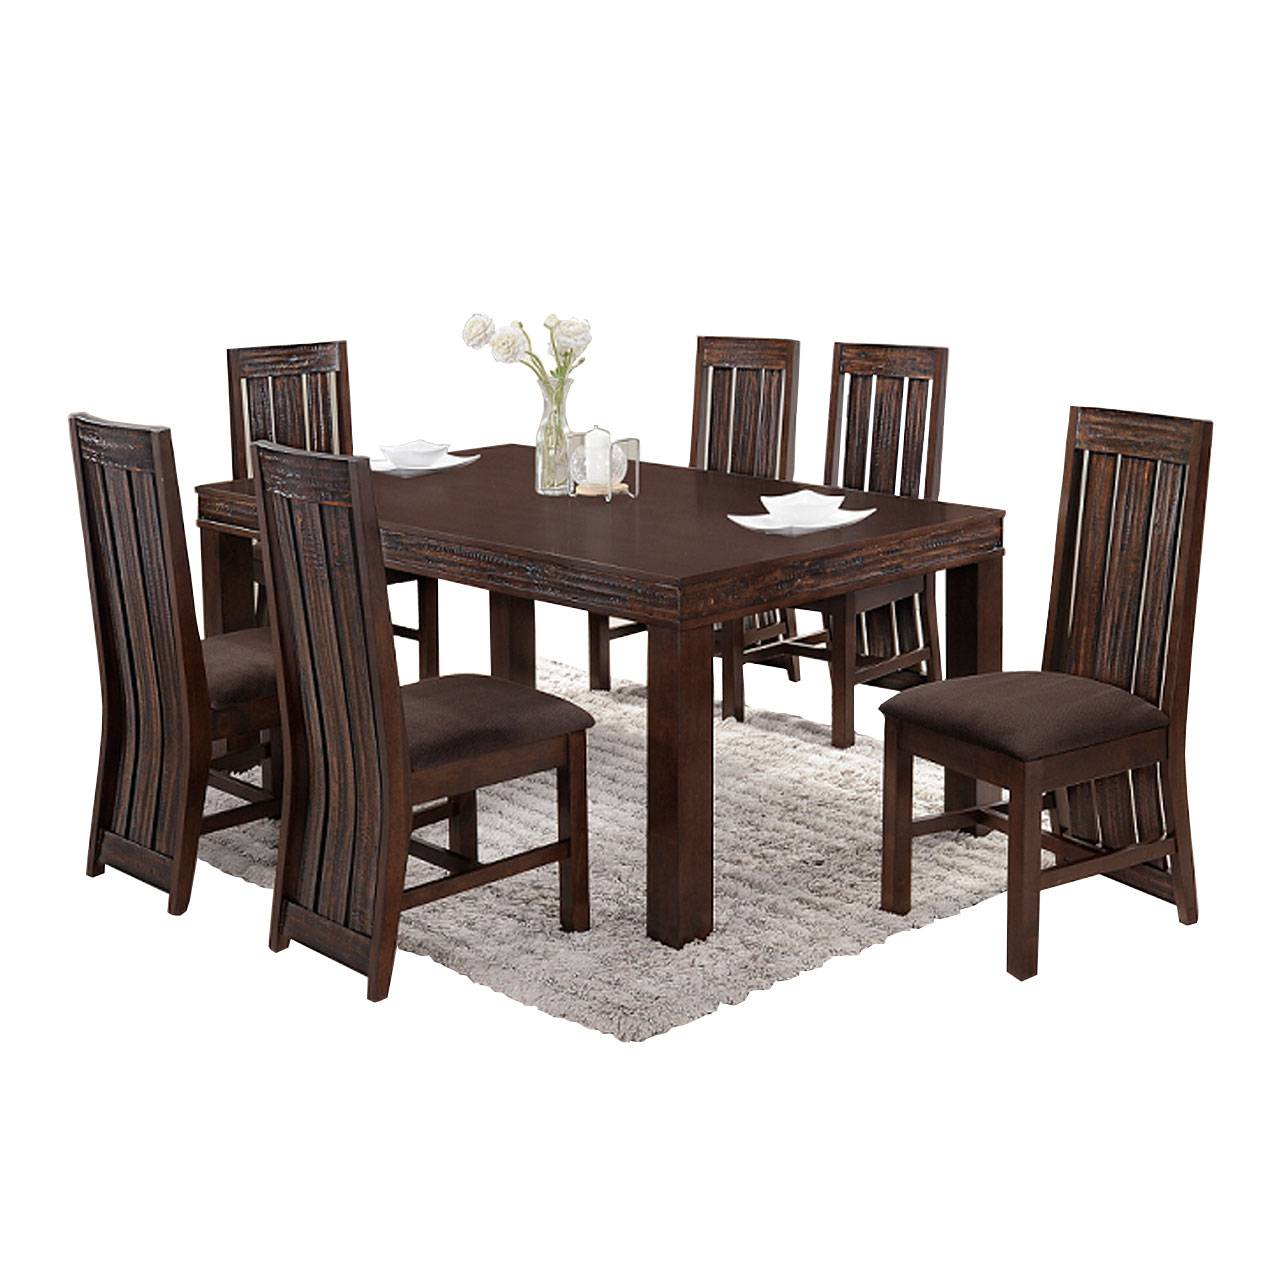 Dillon Dining Set Furniture Store Manila Philippines Urban Concepts